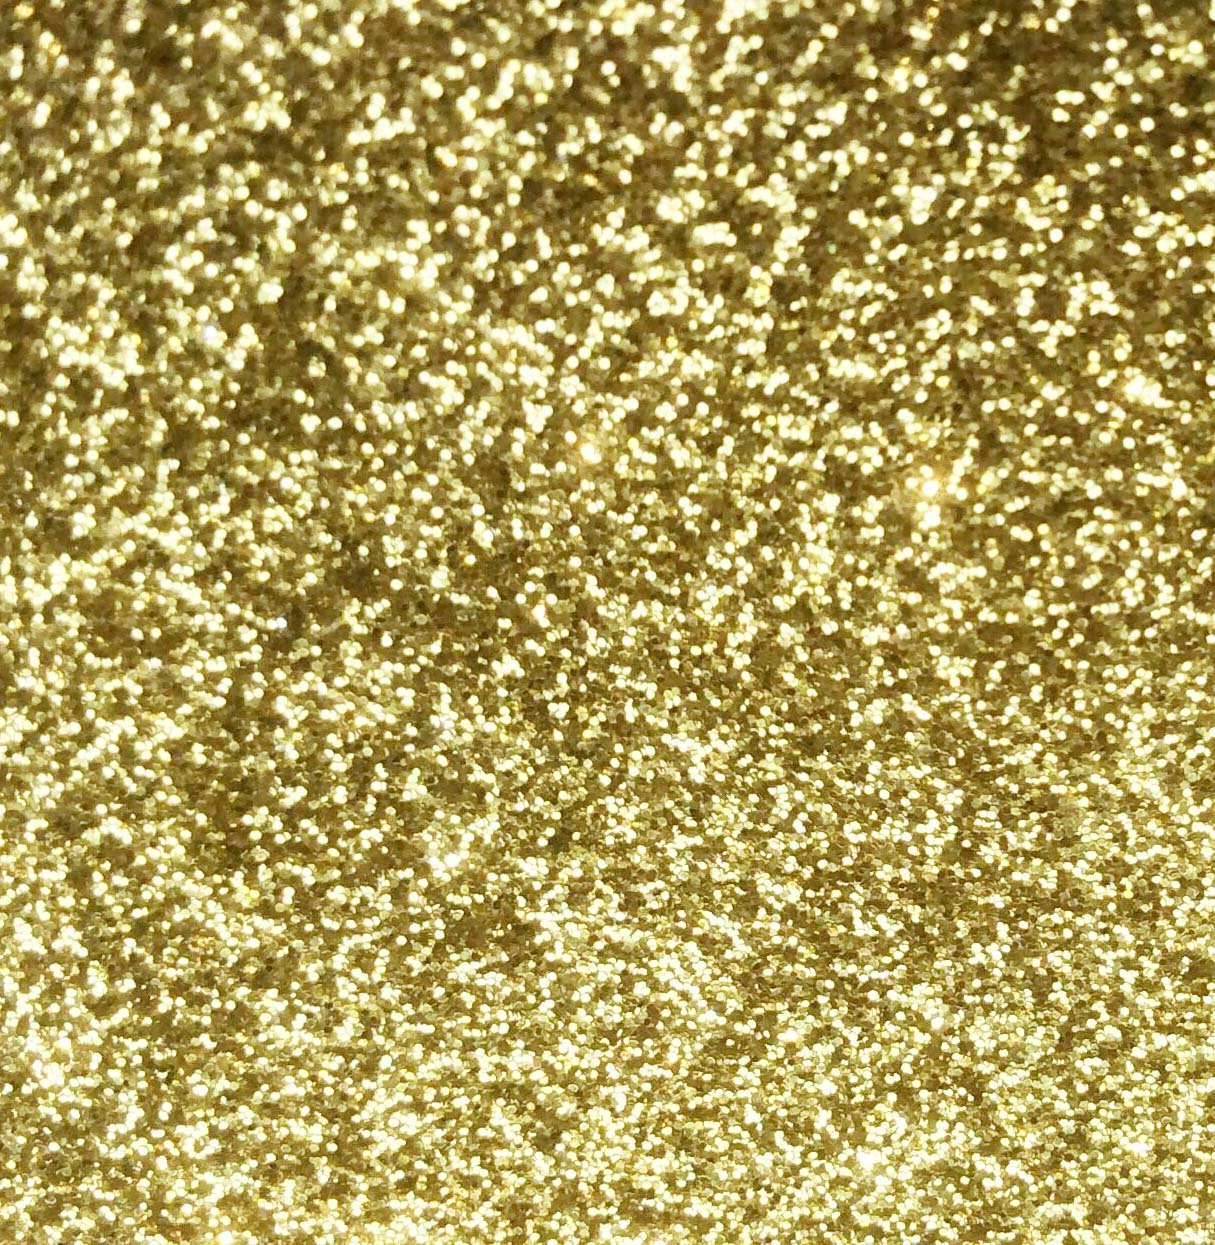 longshine-us10 Sheets 12 x 8 Premium Soft Touch Glitter Cardstock 250gms Sparkling Card DIY Craft for Party Wedding Decoration Glitter Cardstock Cardmaker Assorted Colors (Gold) USGlittercardG@